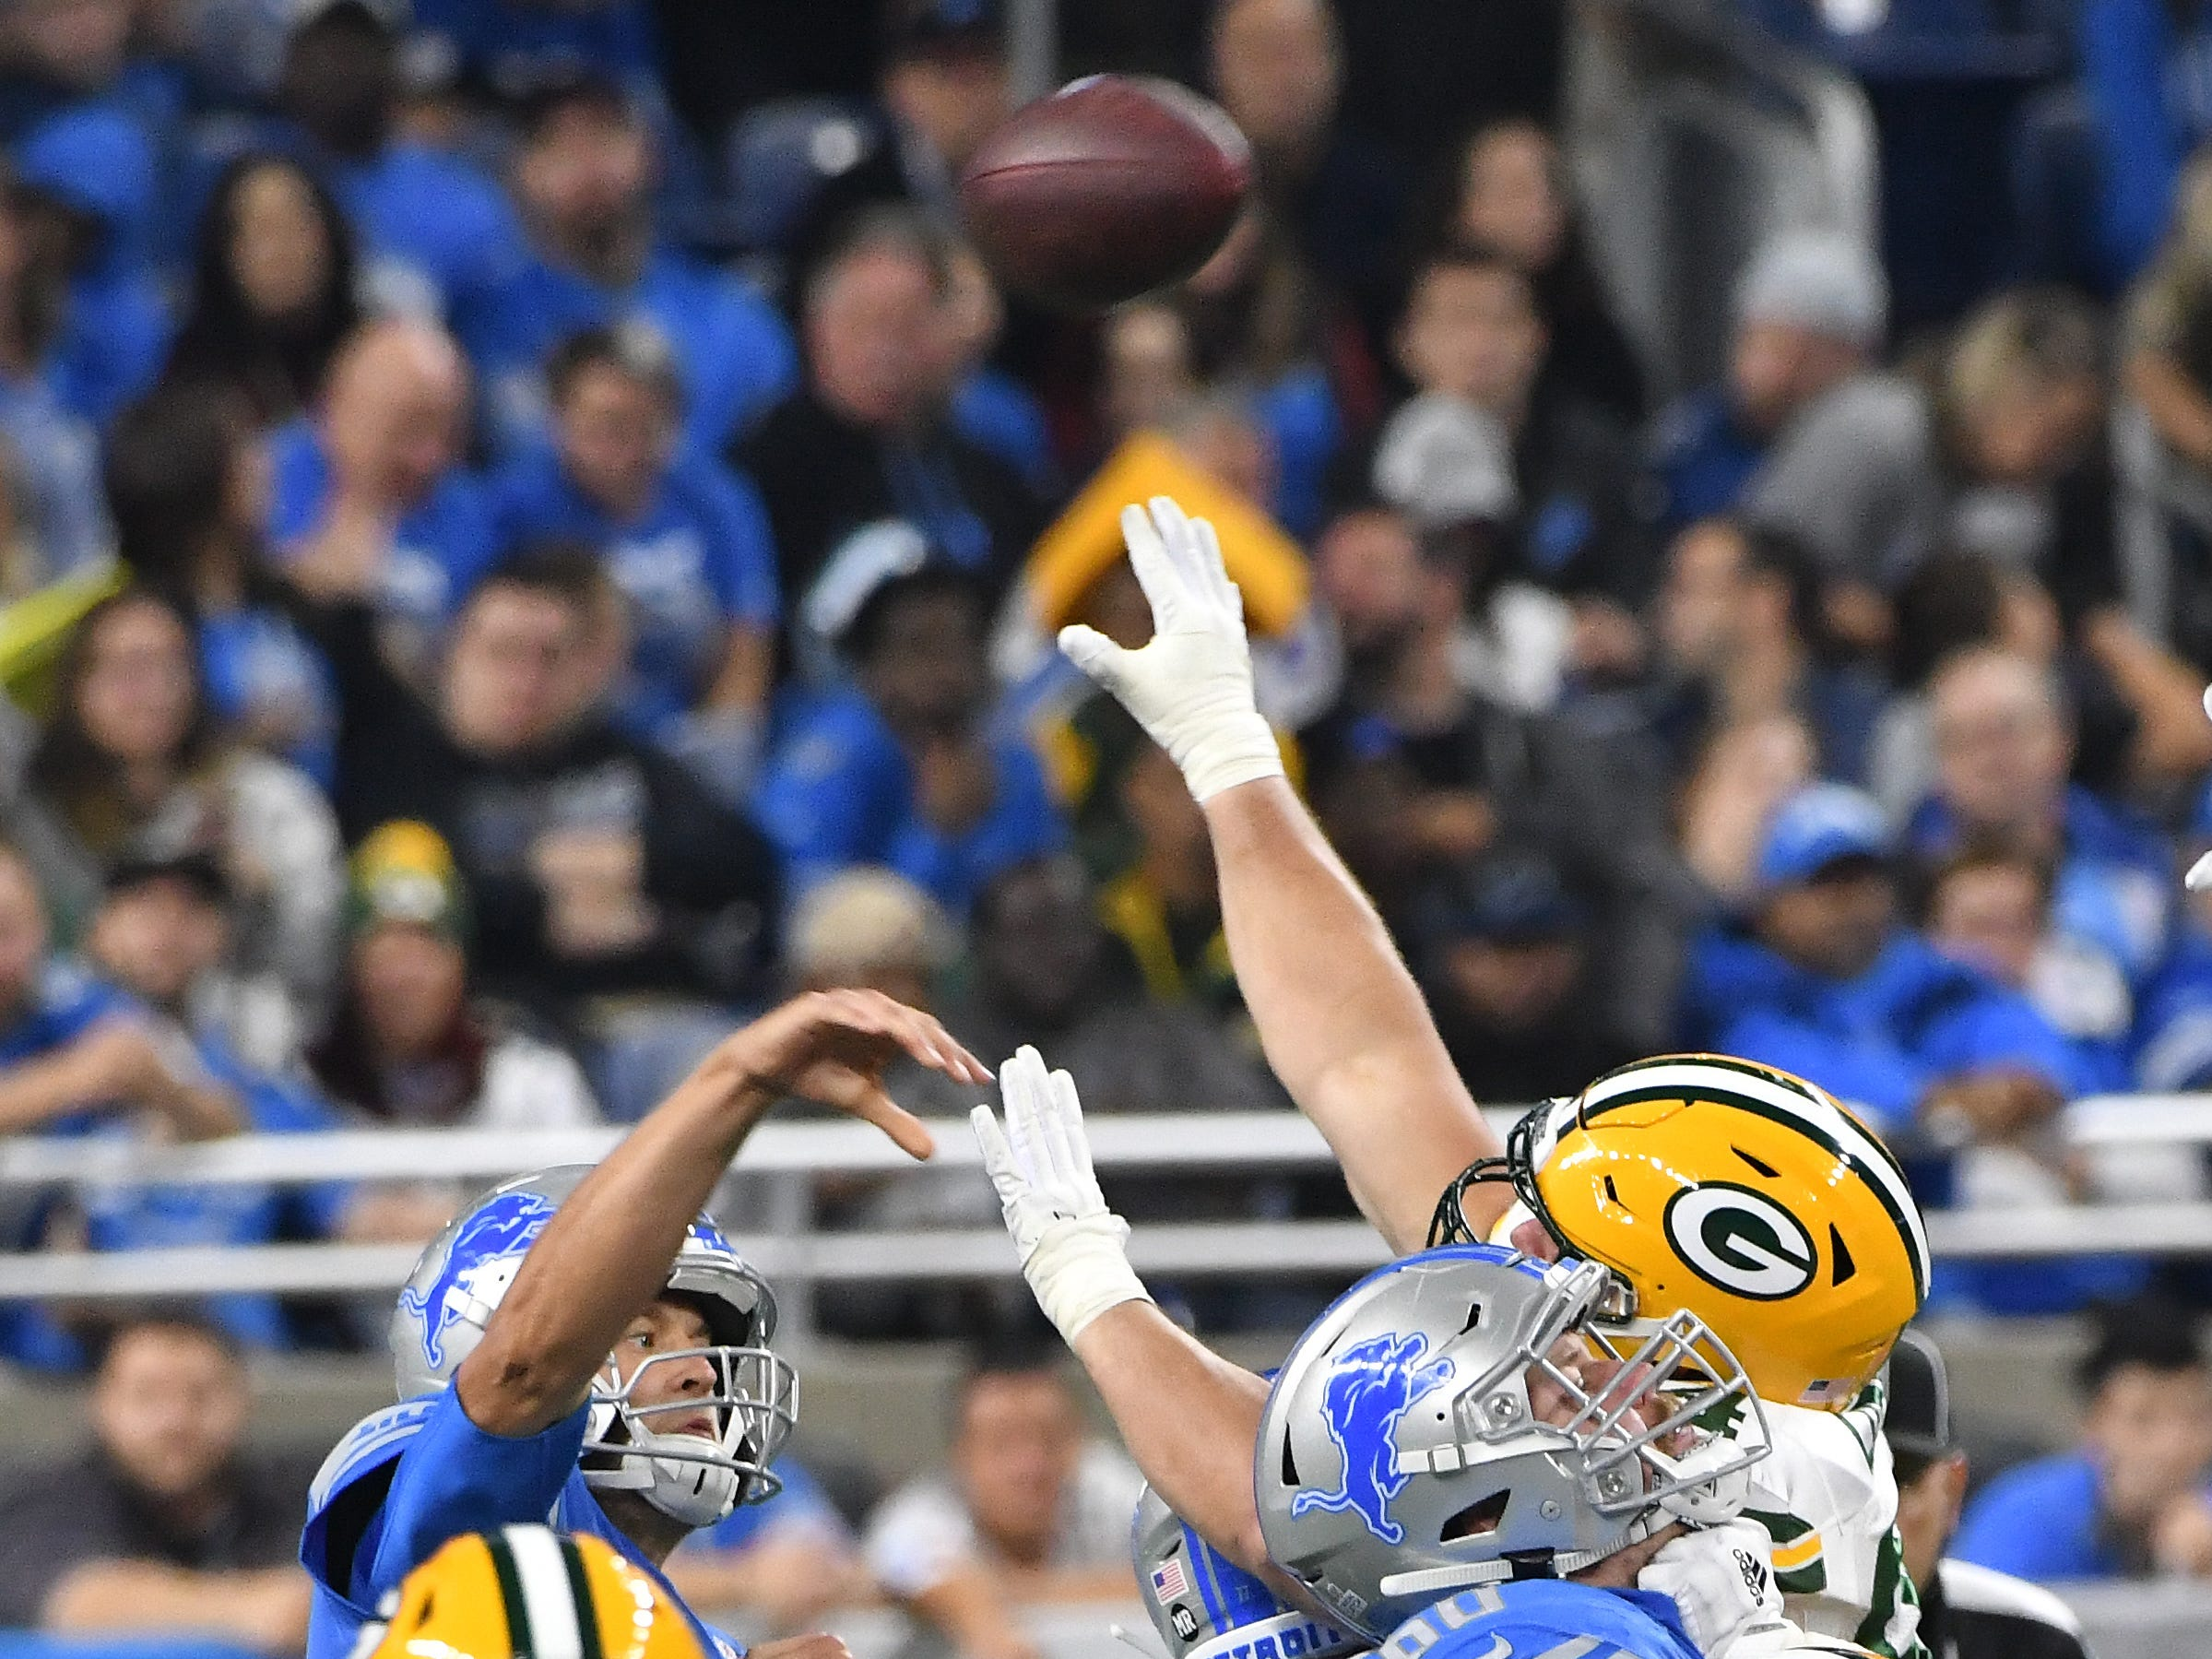 Lions quarterback Matthew Stafford has to get the ball over the Packers defense to get the ball to wide receiver Kenny Golladay on a long first down reception in the first quarter.